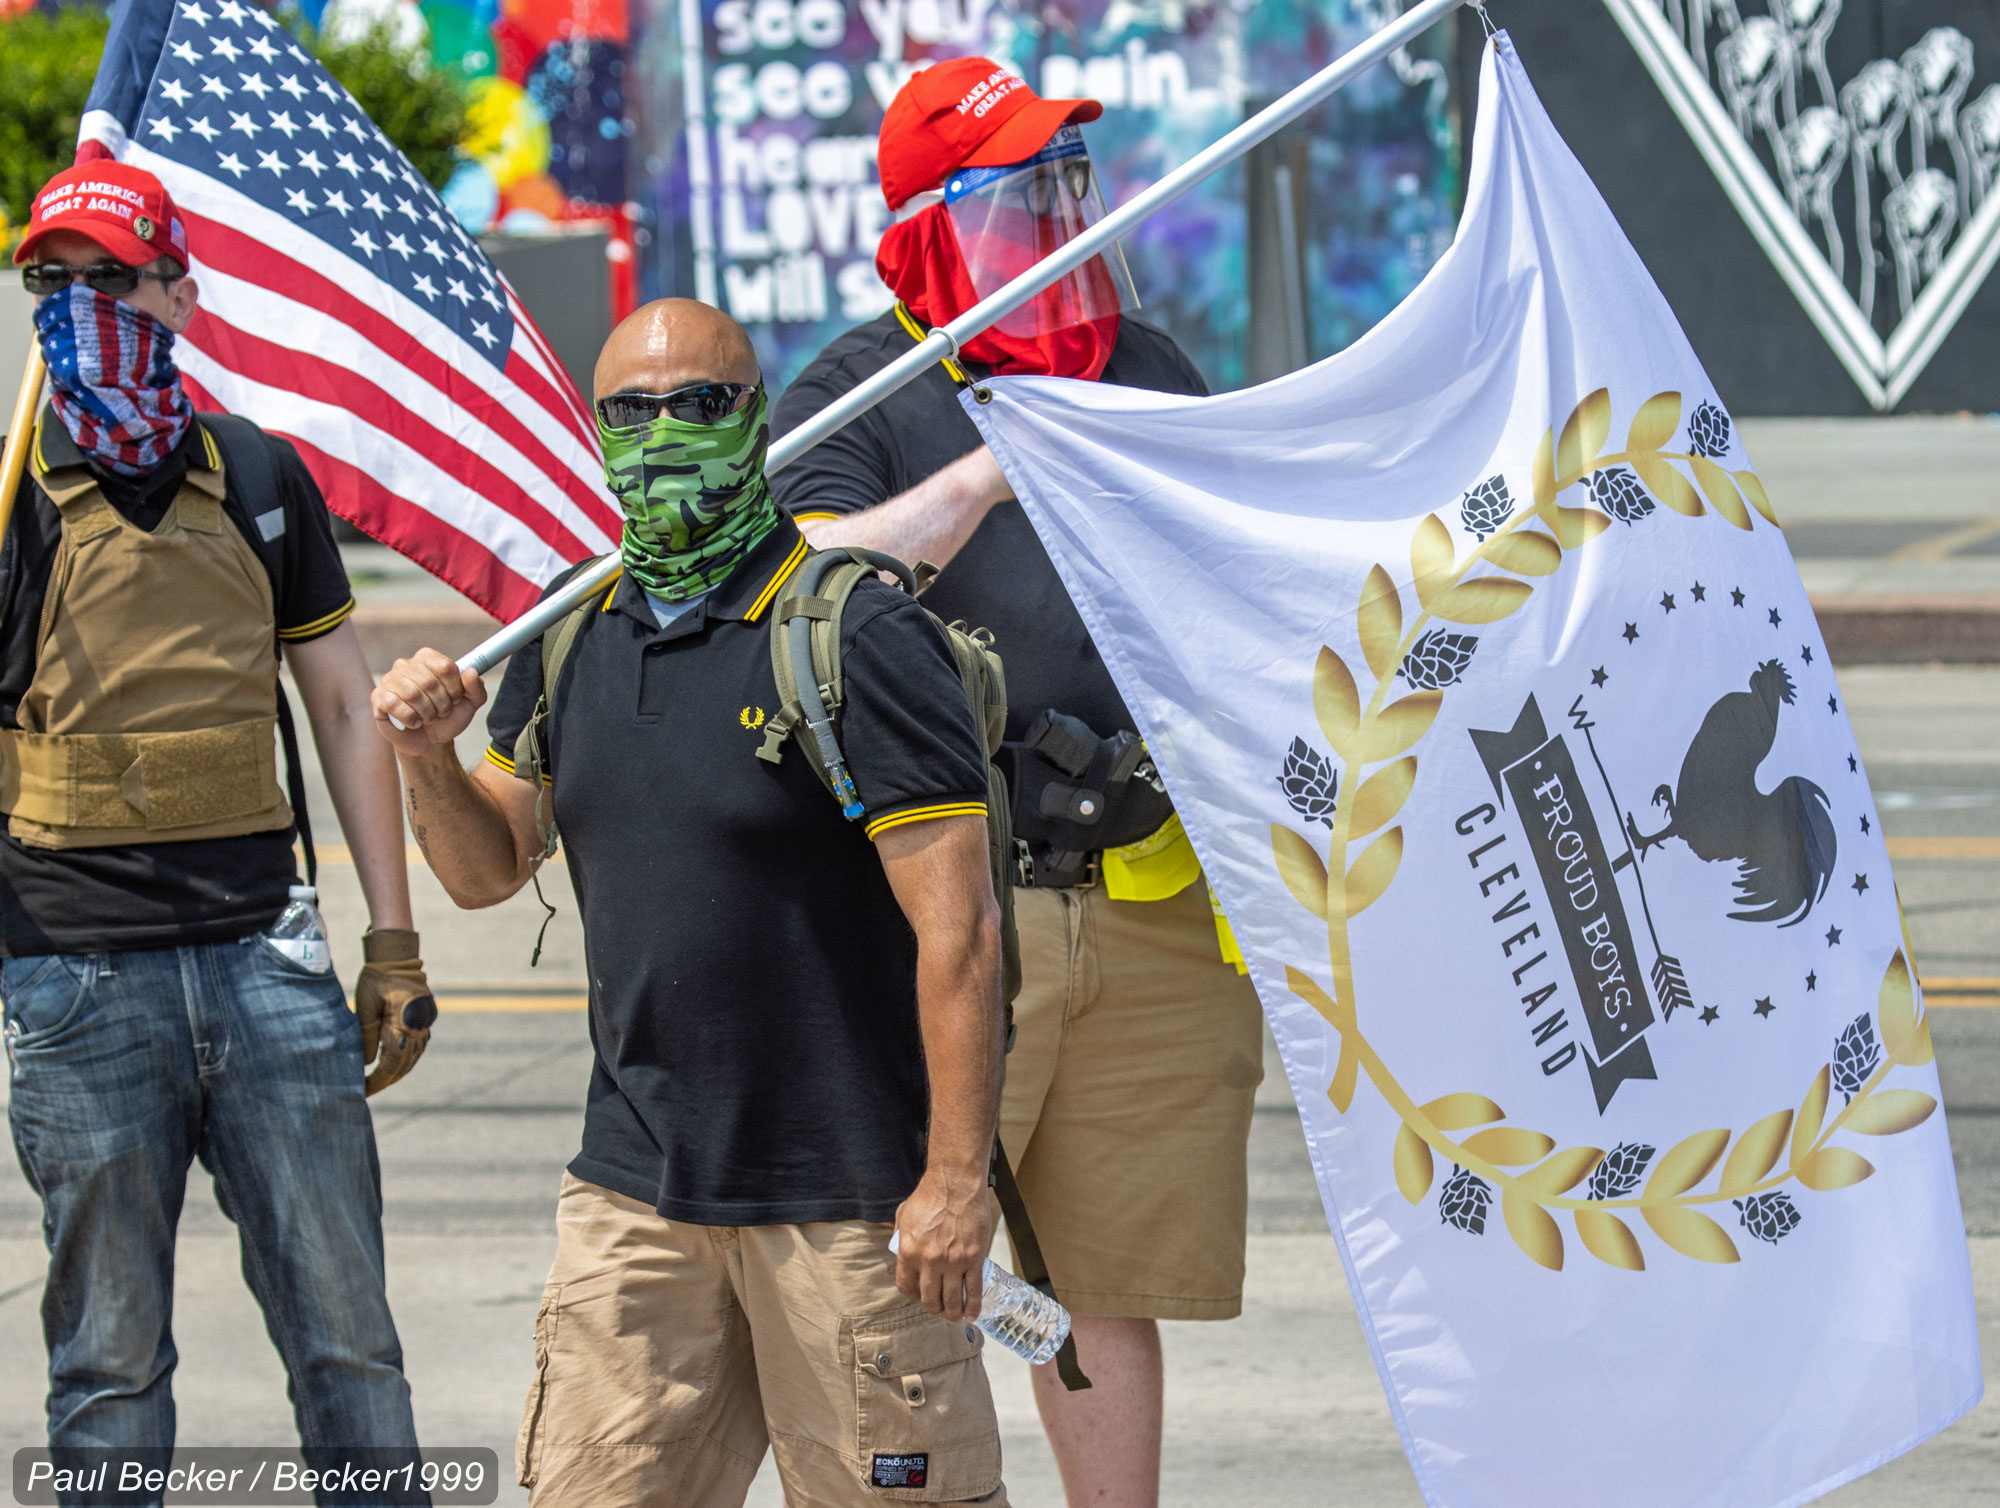 Proud Boys: Misguided Western Civilization Fanboys, Not Racists